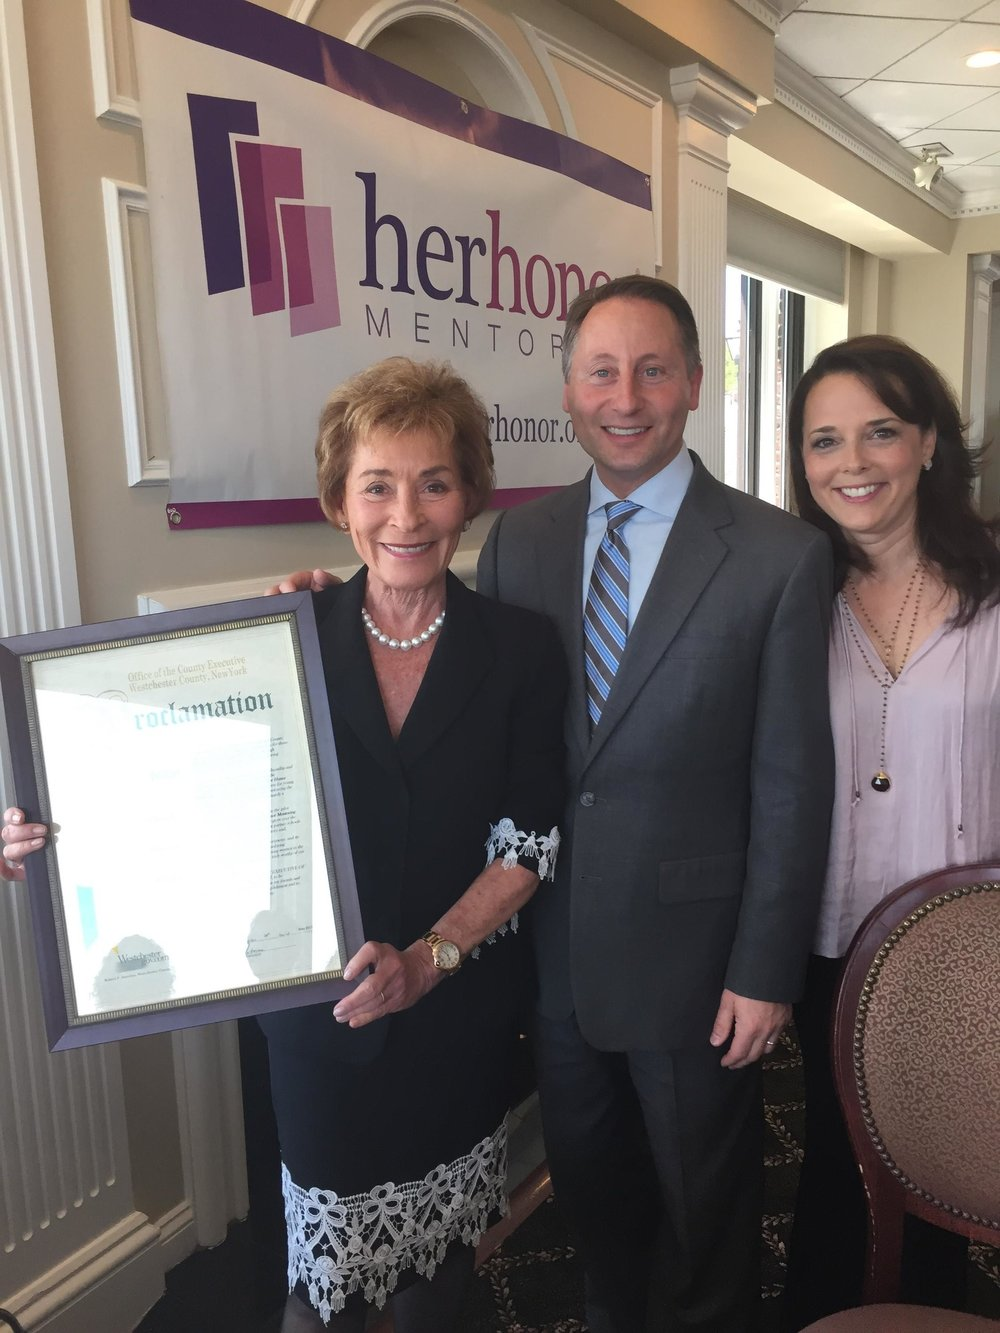 Judge Judy and Nicole Sheindlin accept proclamation for Her Honor Mentoring program